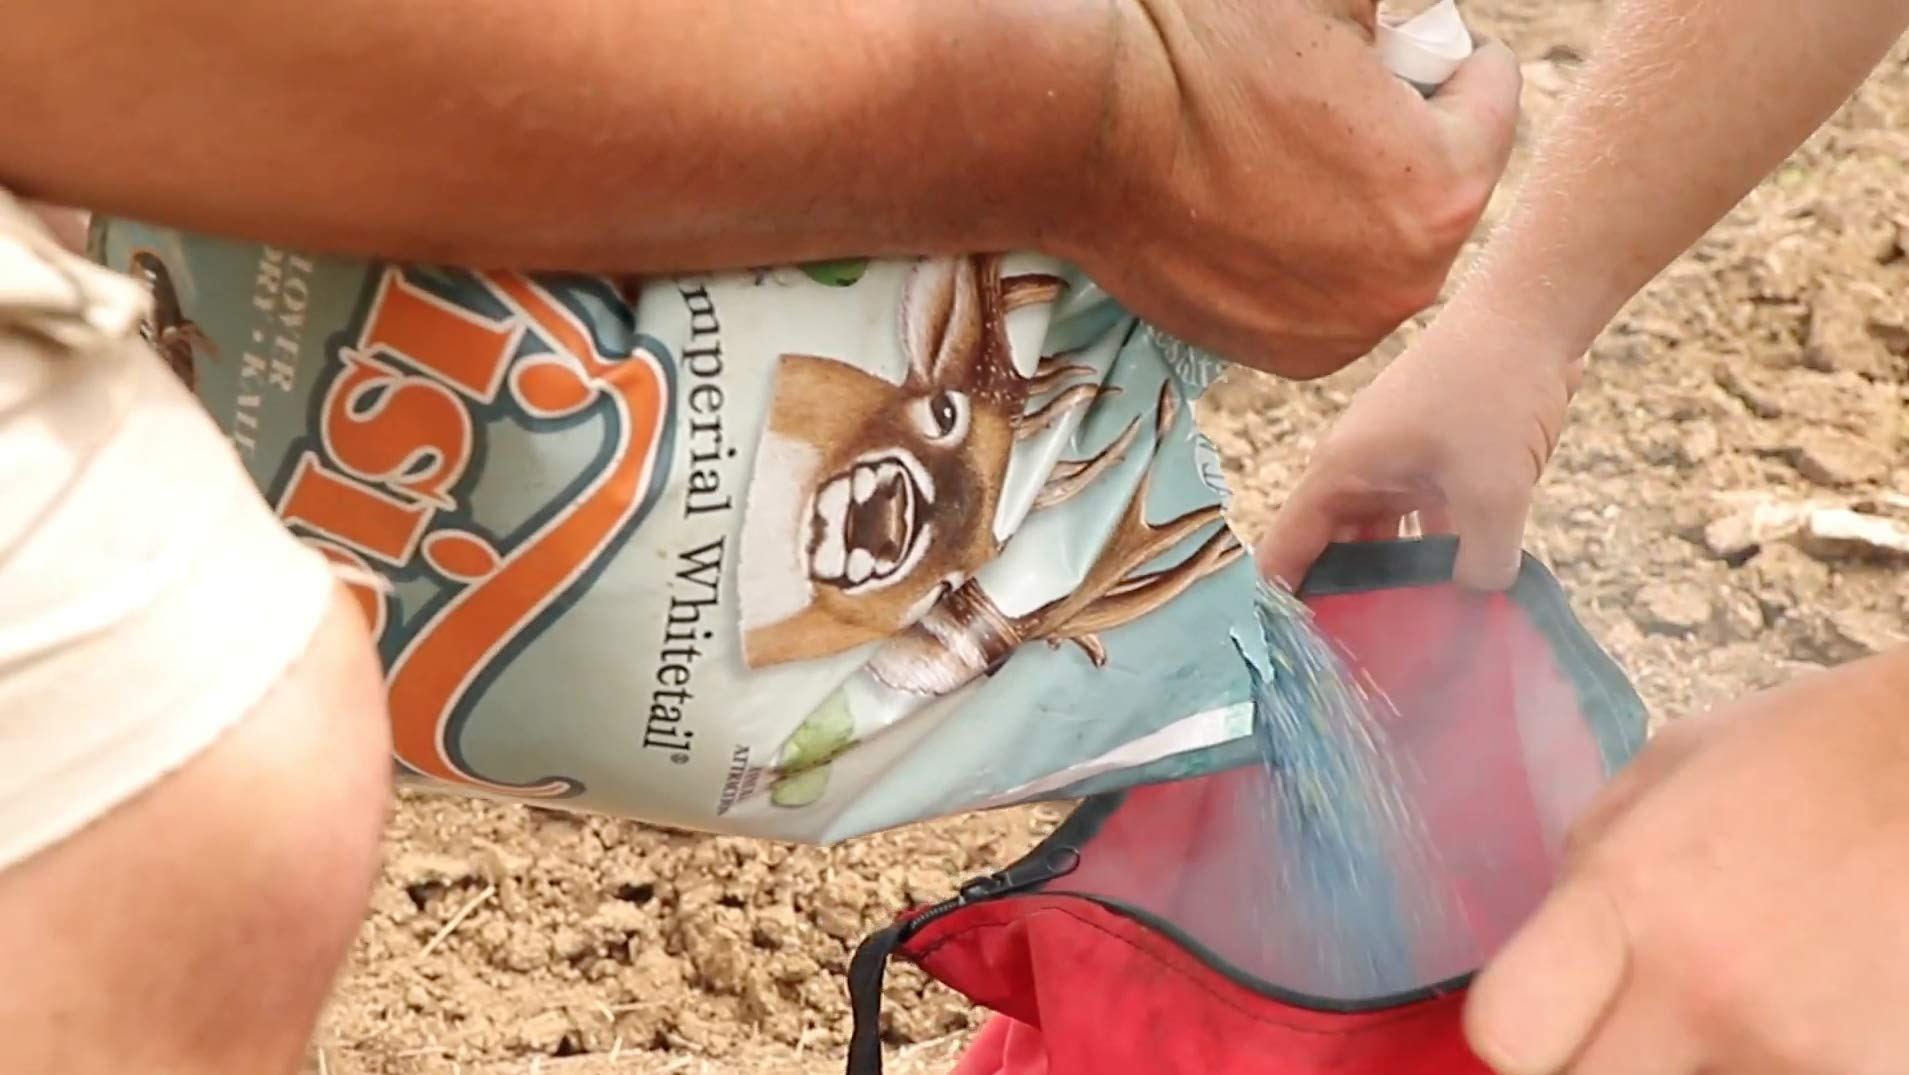 Whitetail Institute Imperial Whitetail VISION Food Plot Seed, 18 Pound by Whitetail Institute (Image #3)